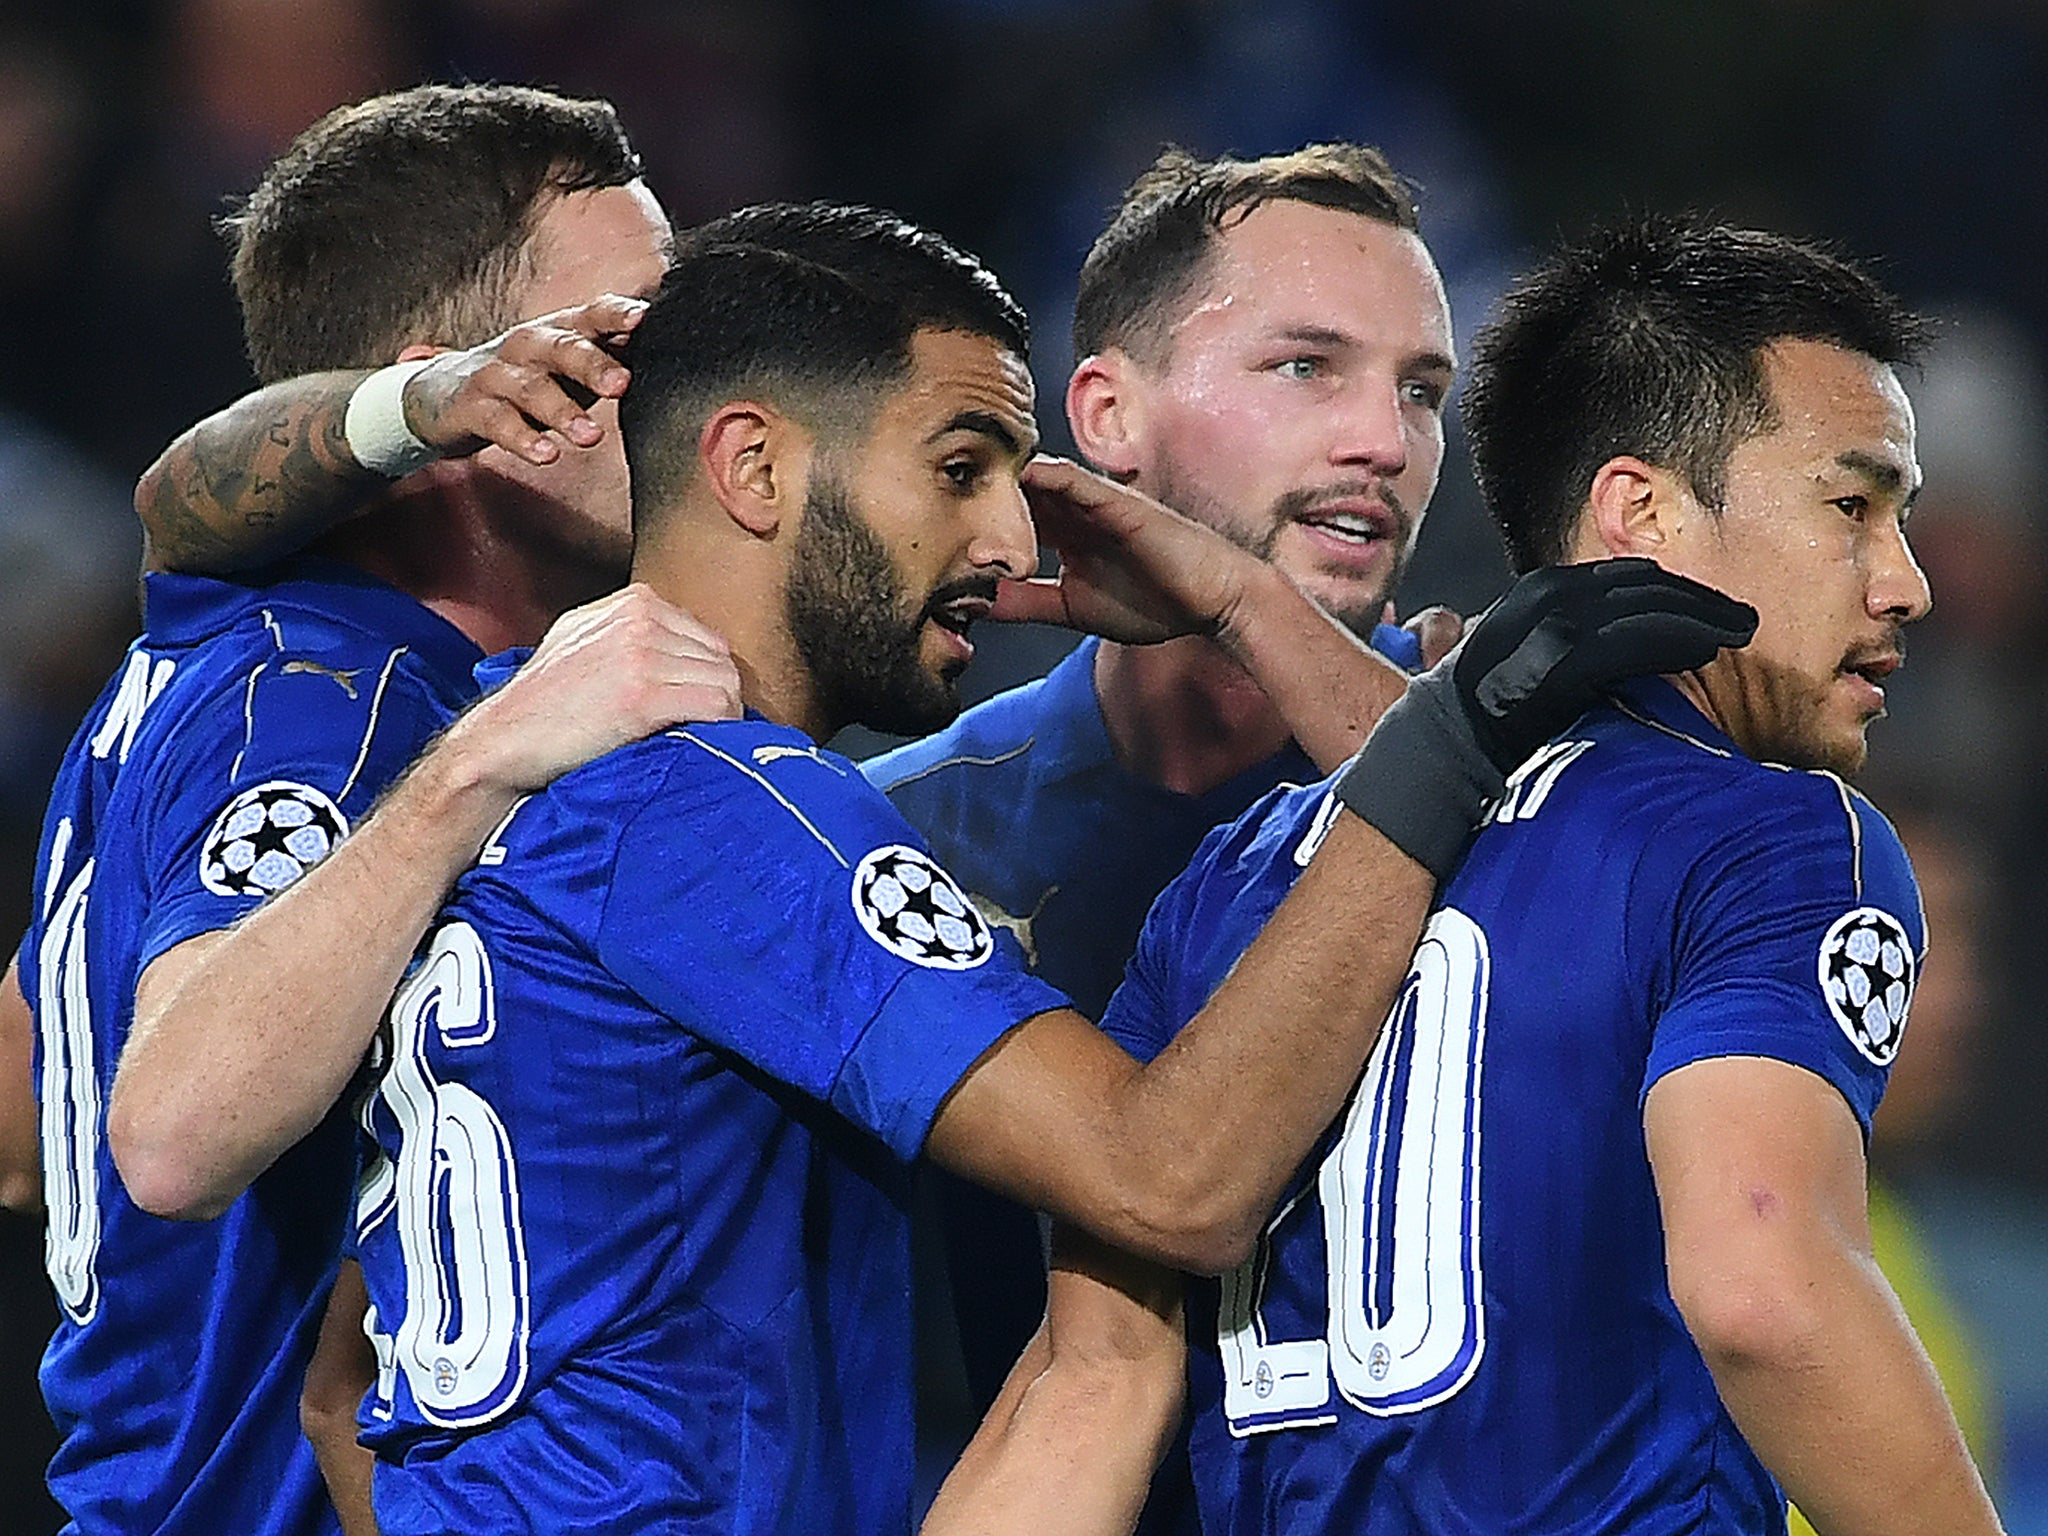 Leicester vs Club Brugge match report: Claudio Ranieri's Foxes progress to the last-16 as group winners